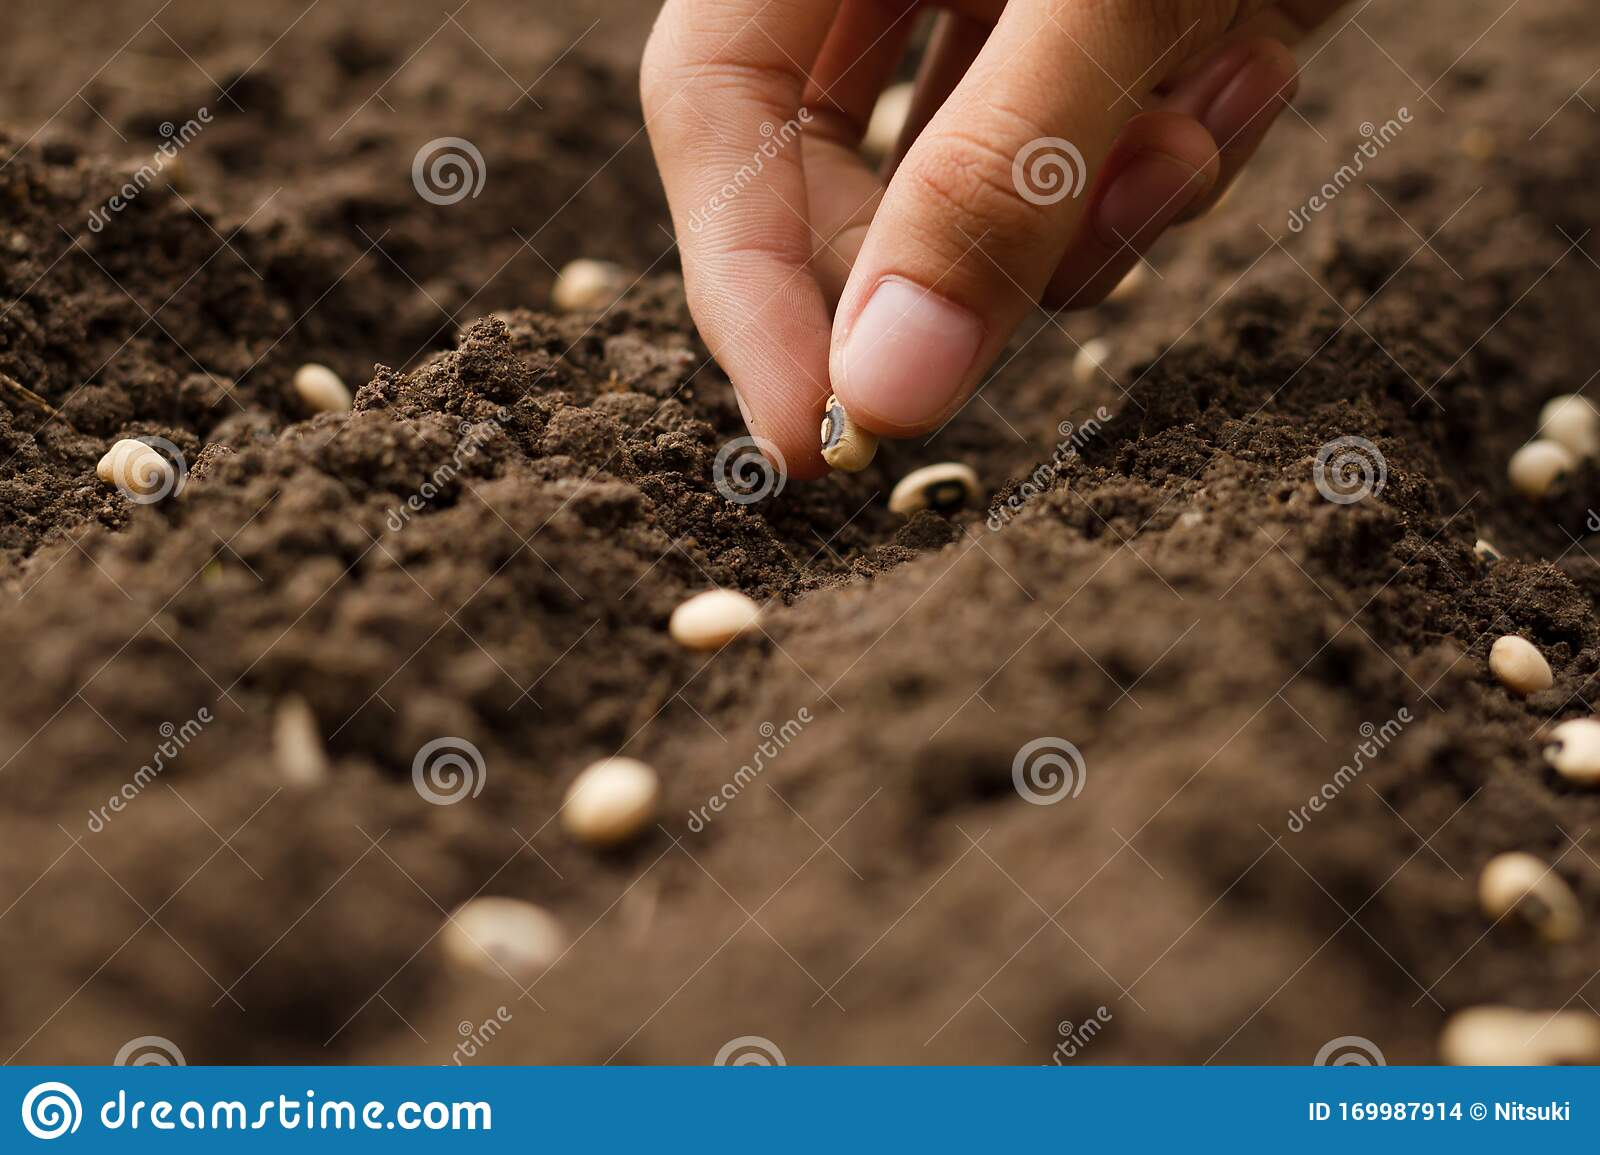 Seed Sowing On Soil Gardening Concept Stock Photo Image Of